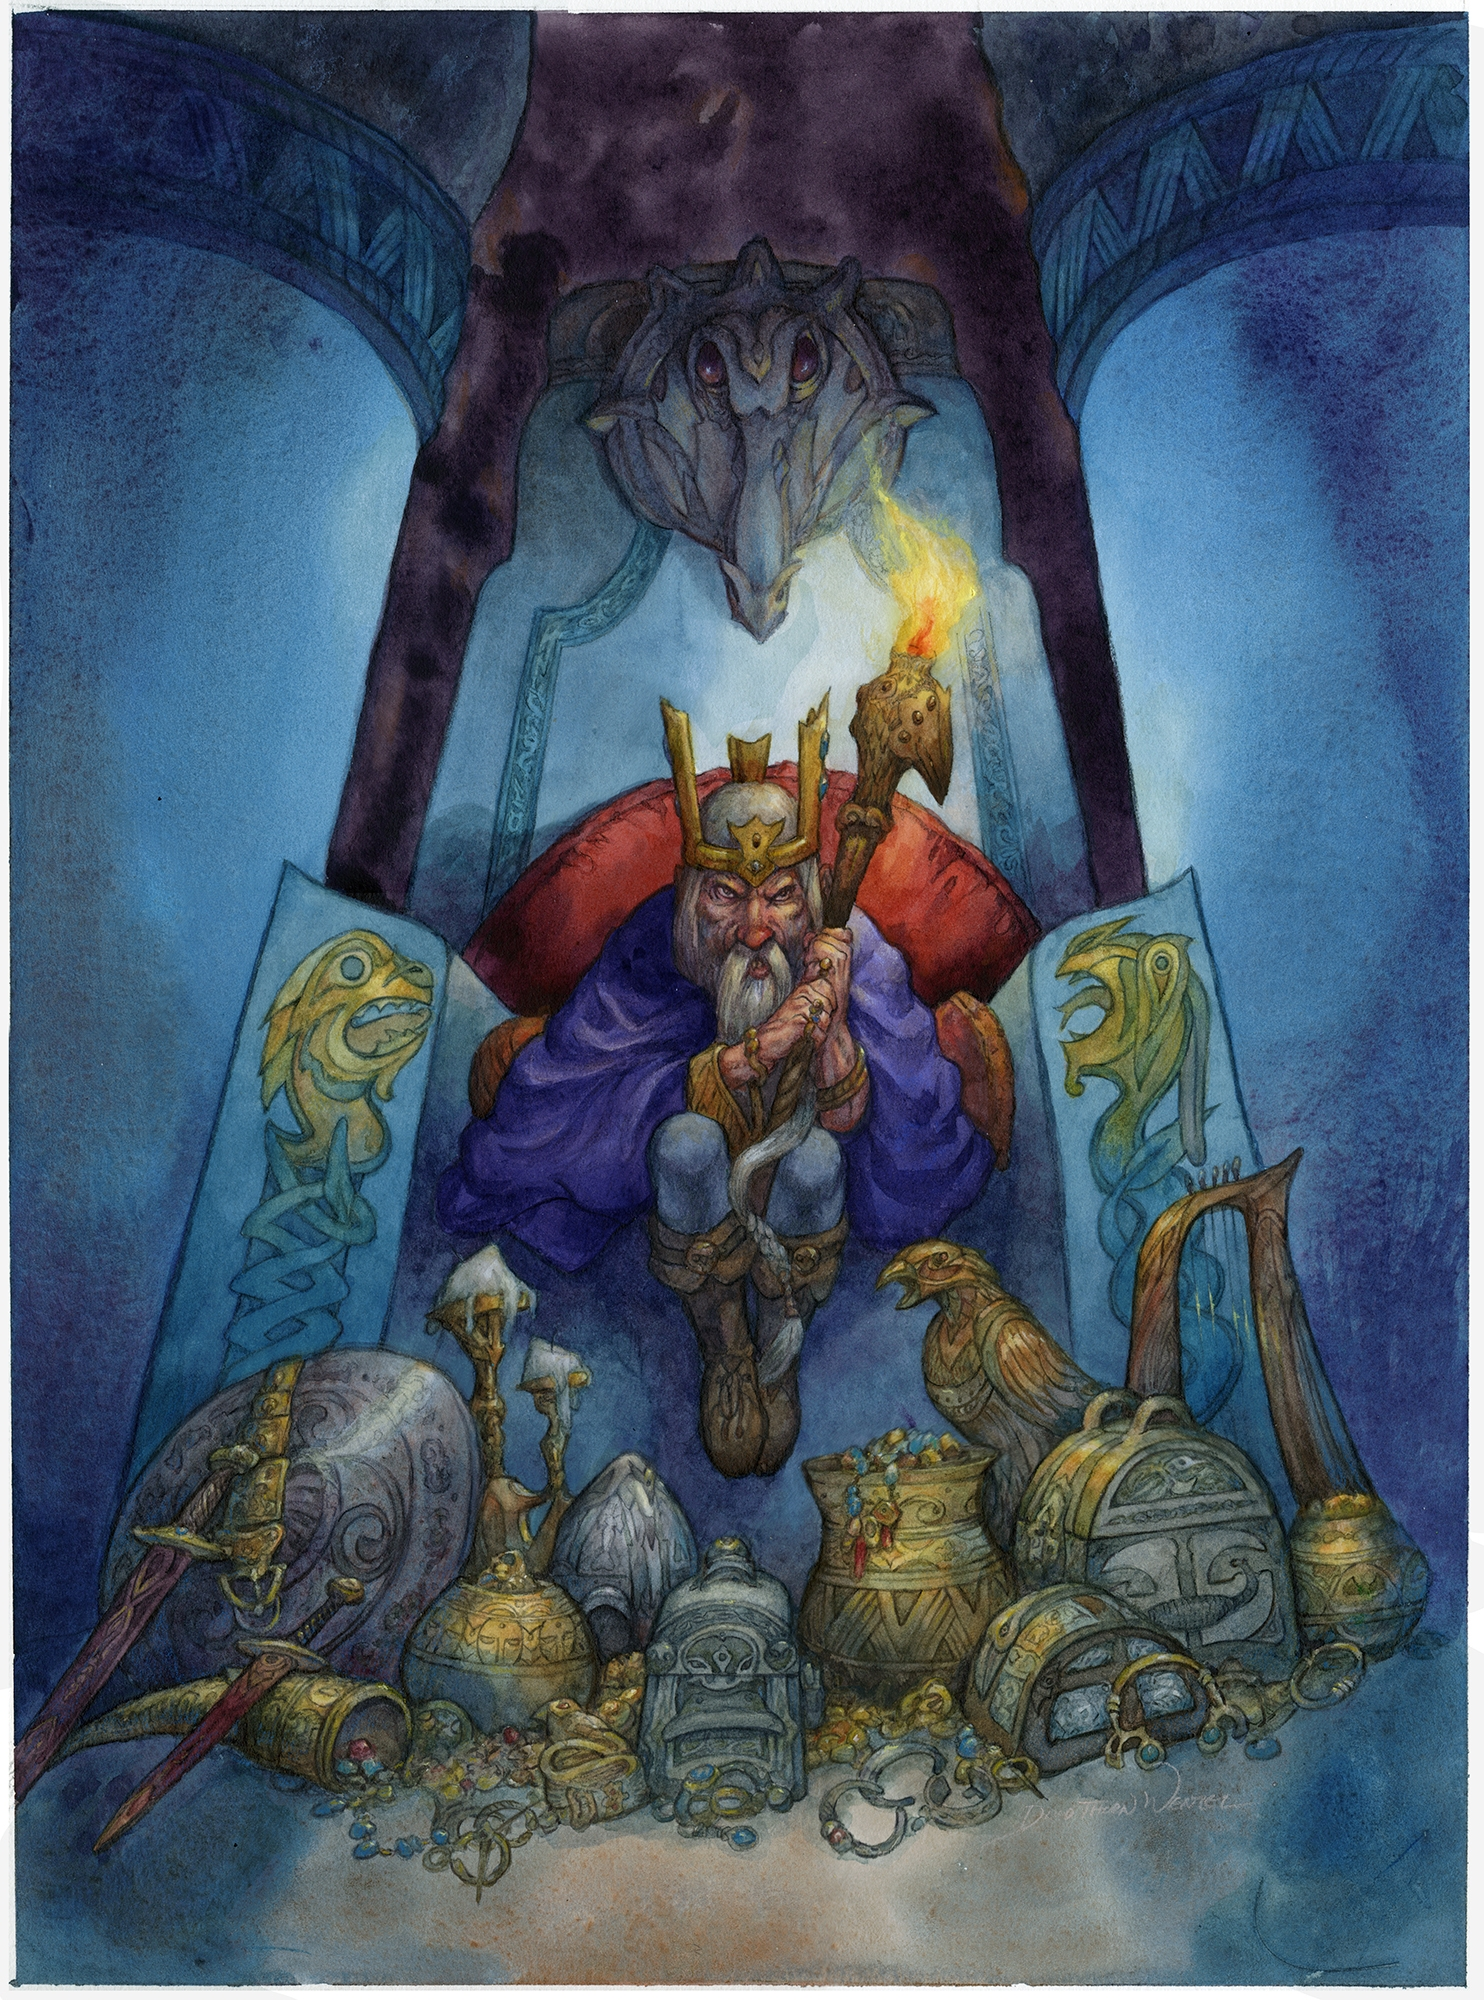 Hoard of the Dwarven King, cover of Kingdom of the Dwarfs Comic Art